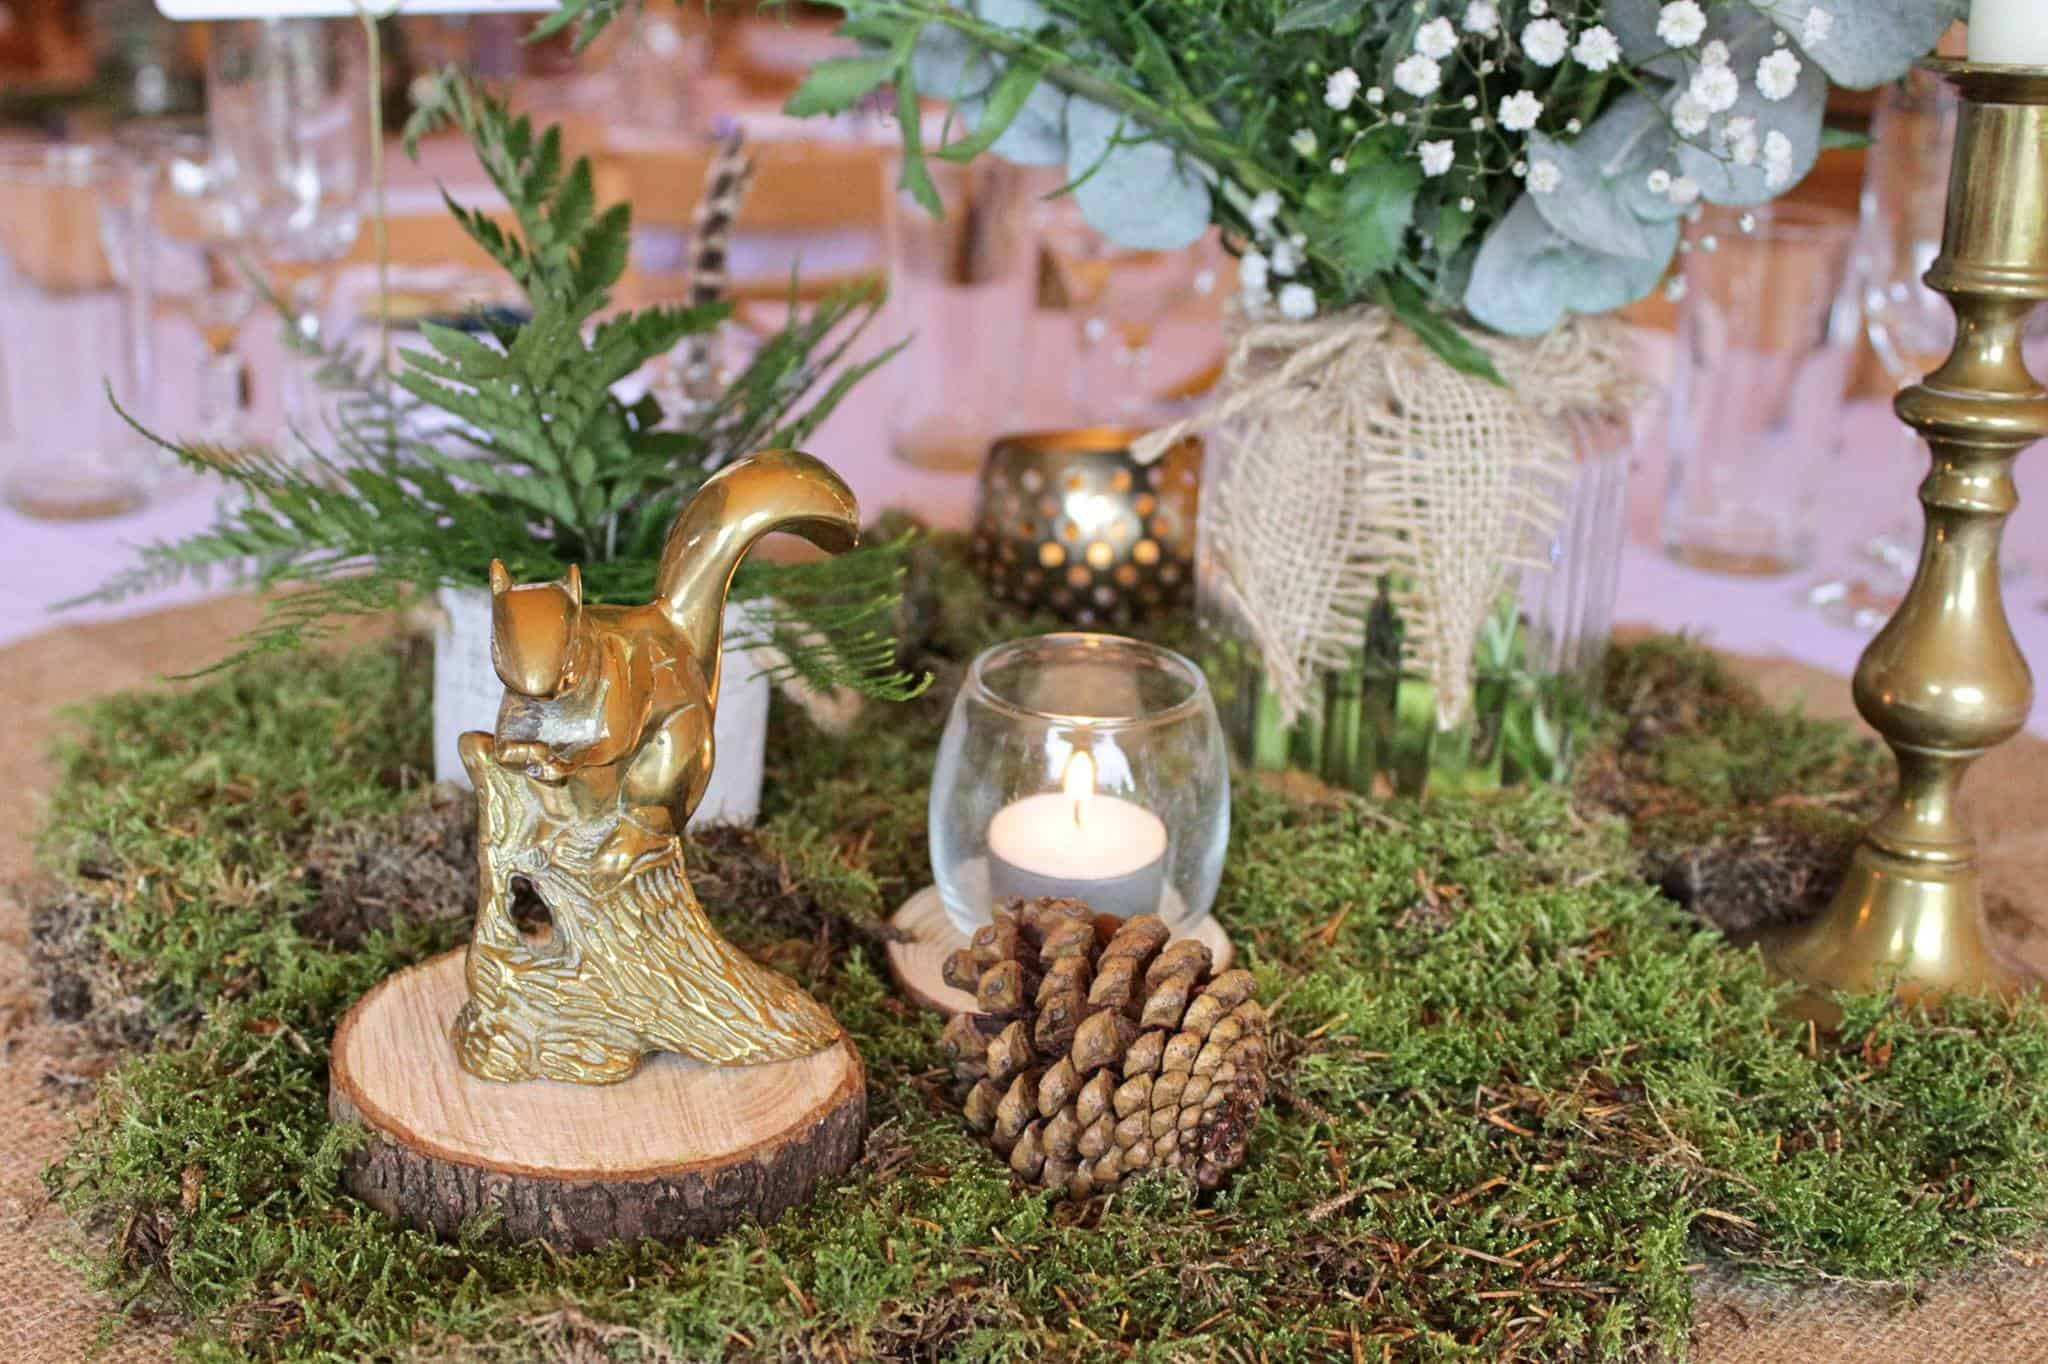 Squiral table setting - Woodland themed styling by The Rustic Wedding Company